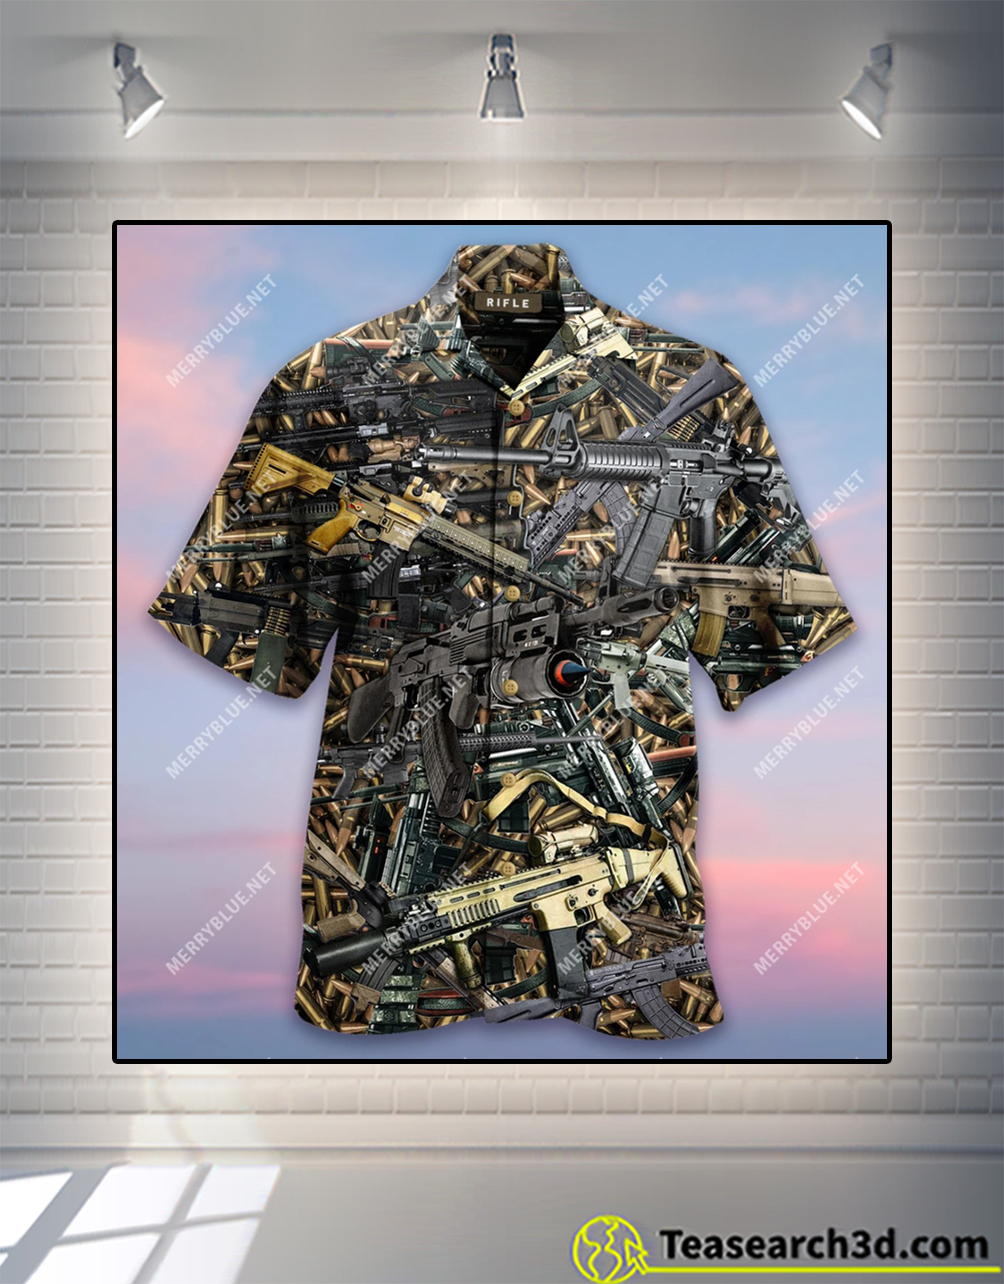 The quickest way to a man's heart is 2970 feet per second hawaiian shirt